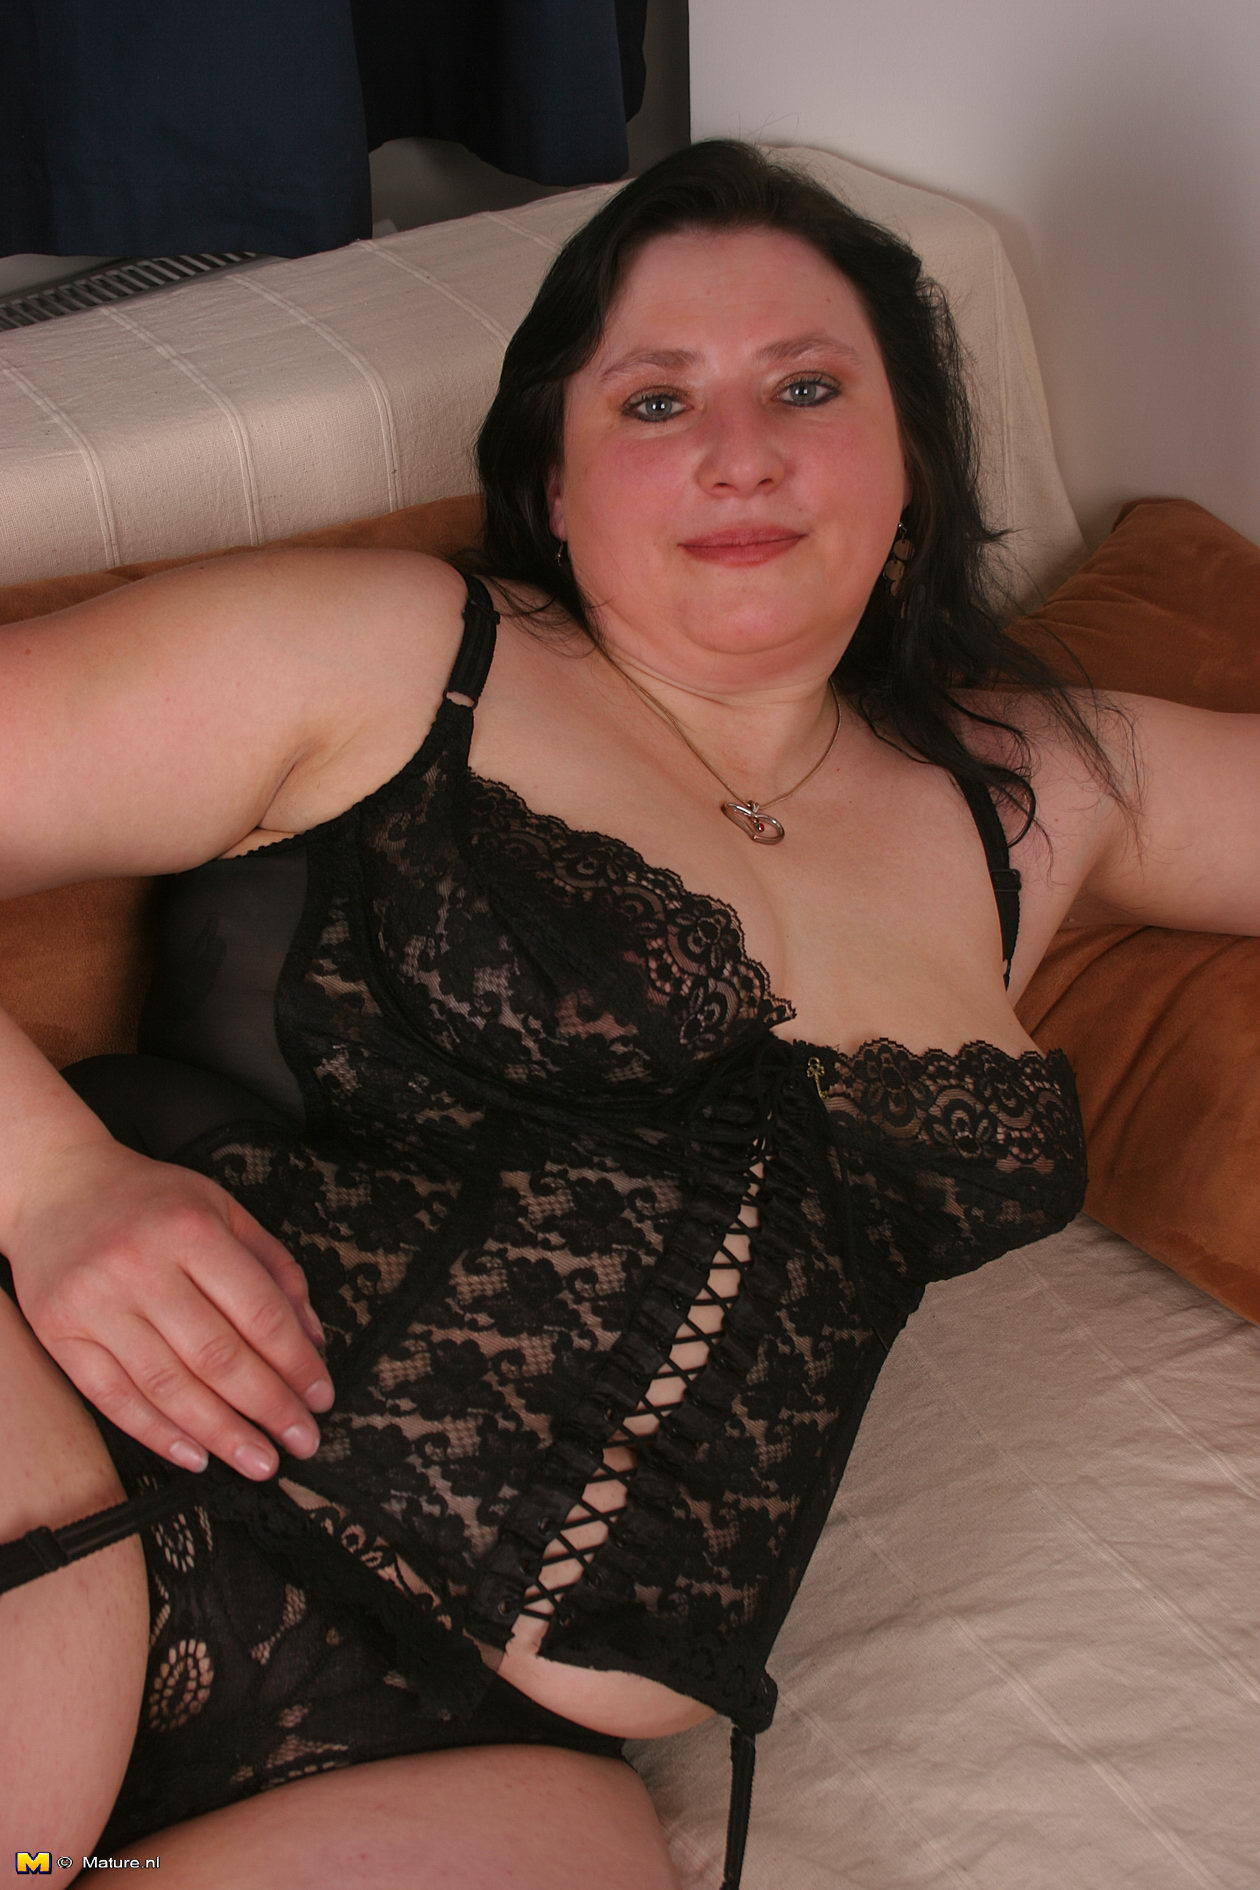 Mature Chubby Hairy Pussy - Experienced thick brunette in black lingerie spreads her hairy mature pussy